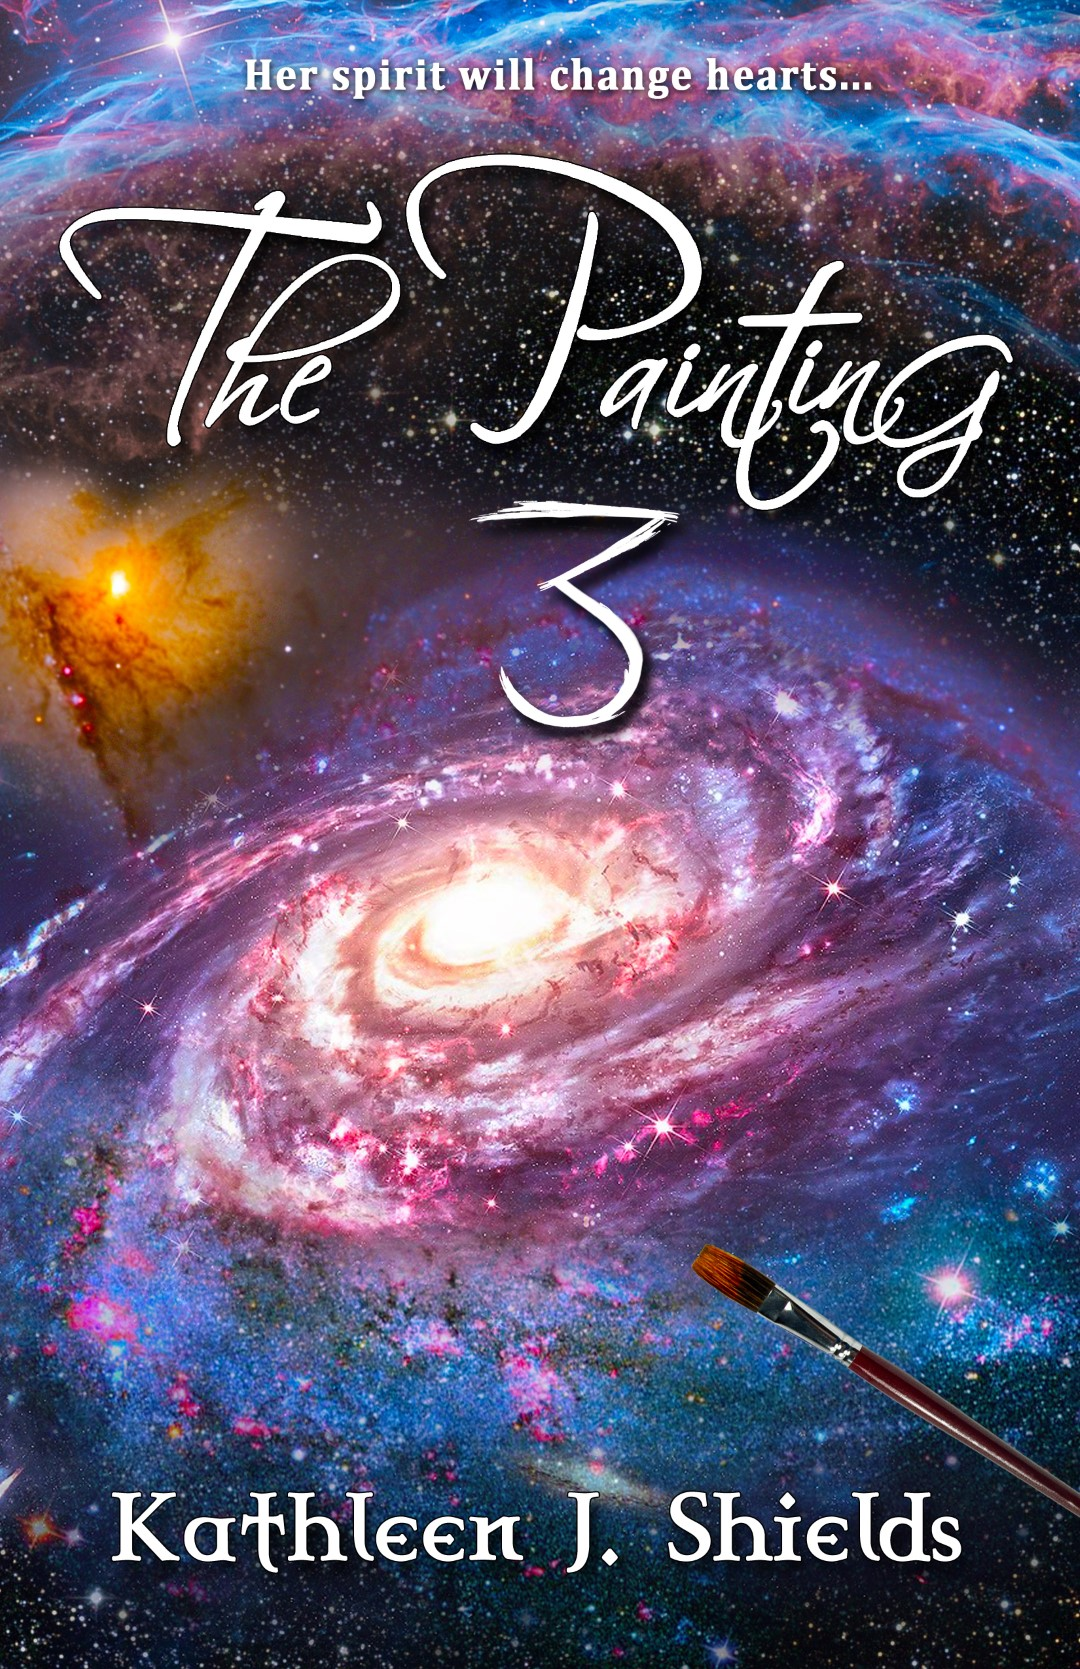 The Painting 3 Trilogy by Kathleen J. Shields